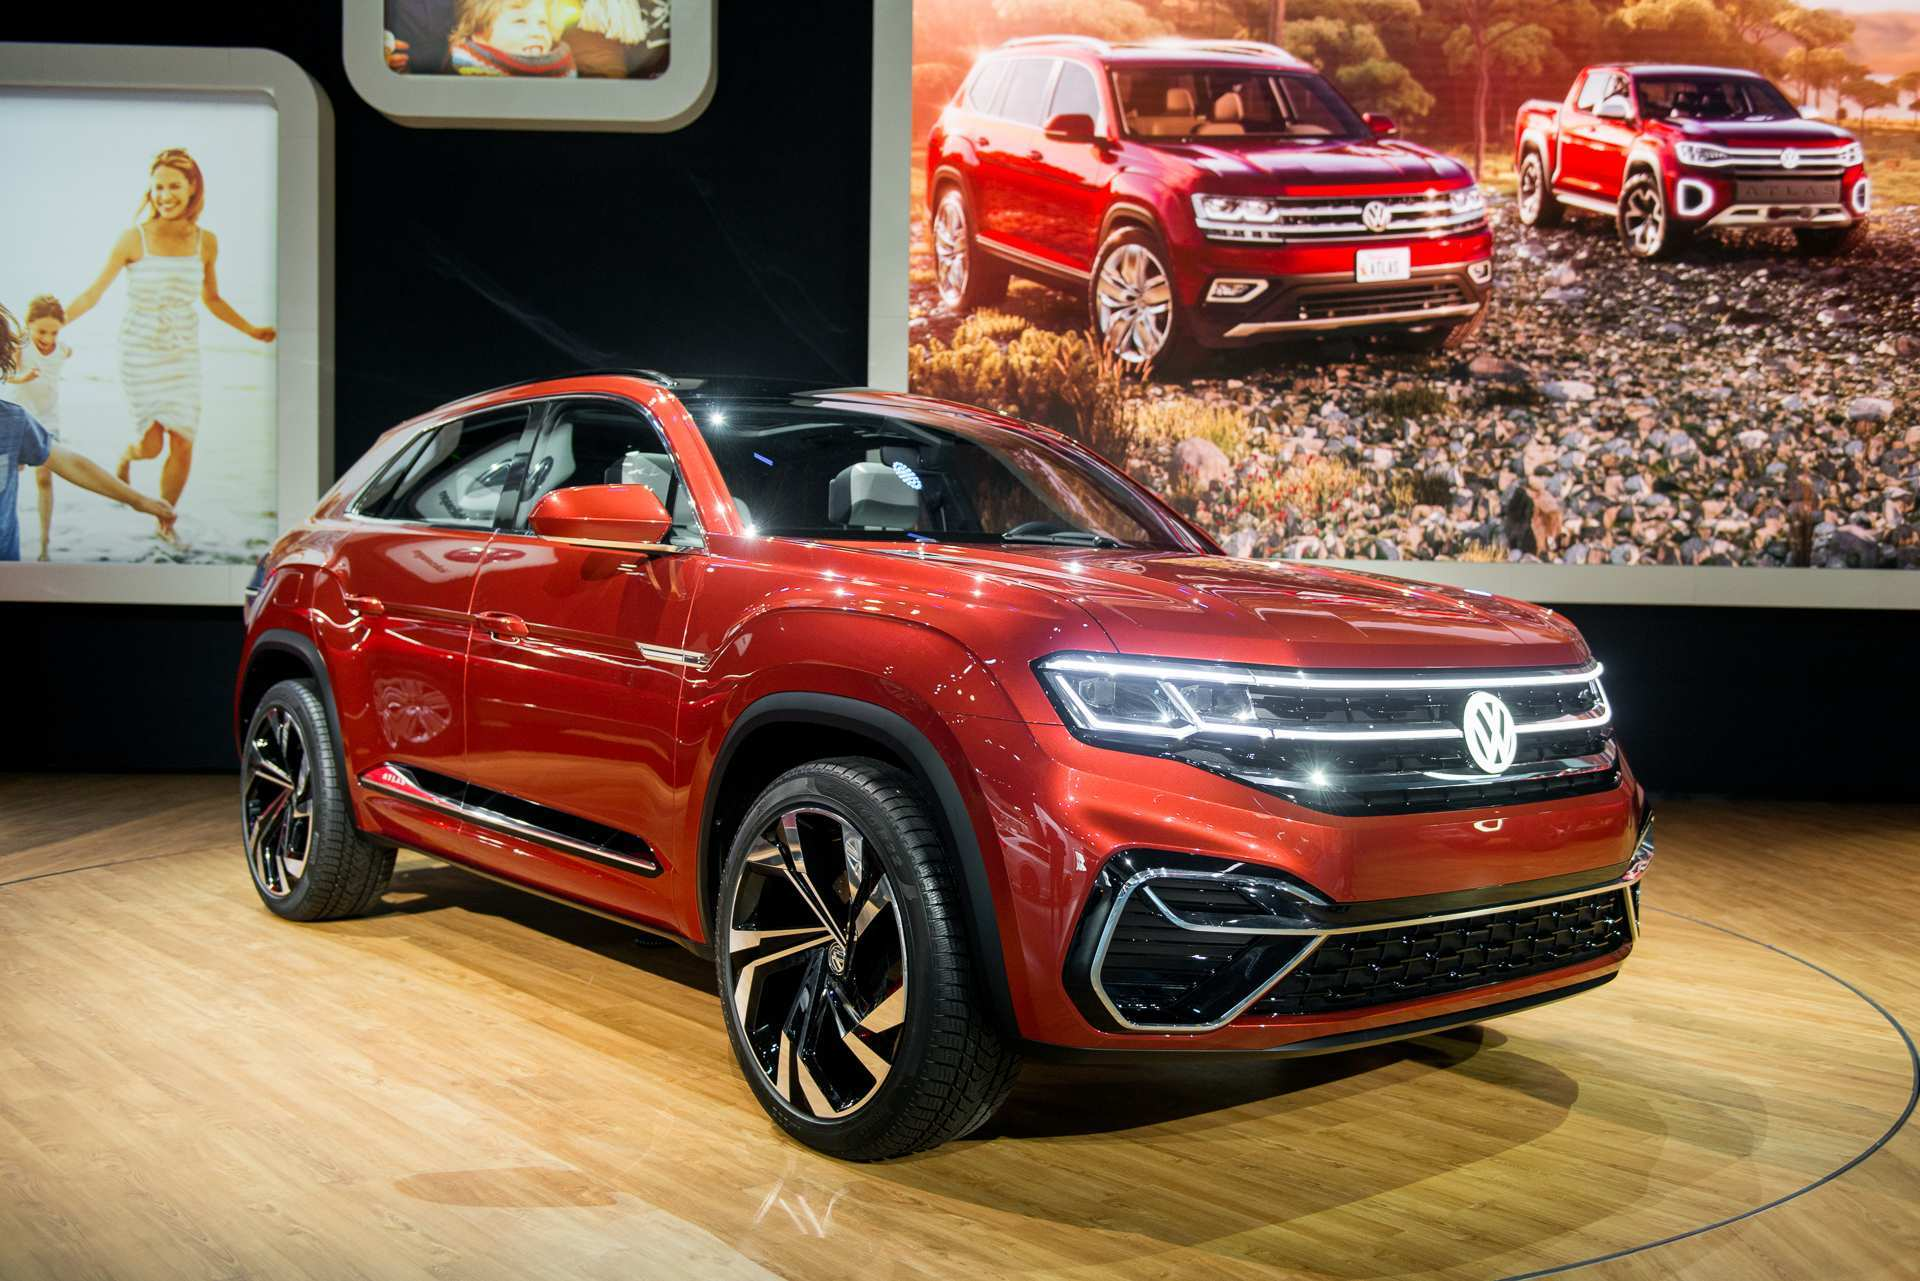 70 Gallery of Volkswagen Upcoming Cars 2020 Picture with Volkswagen Upcoming Cars 2020